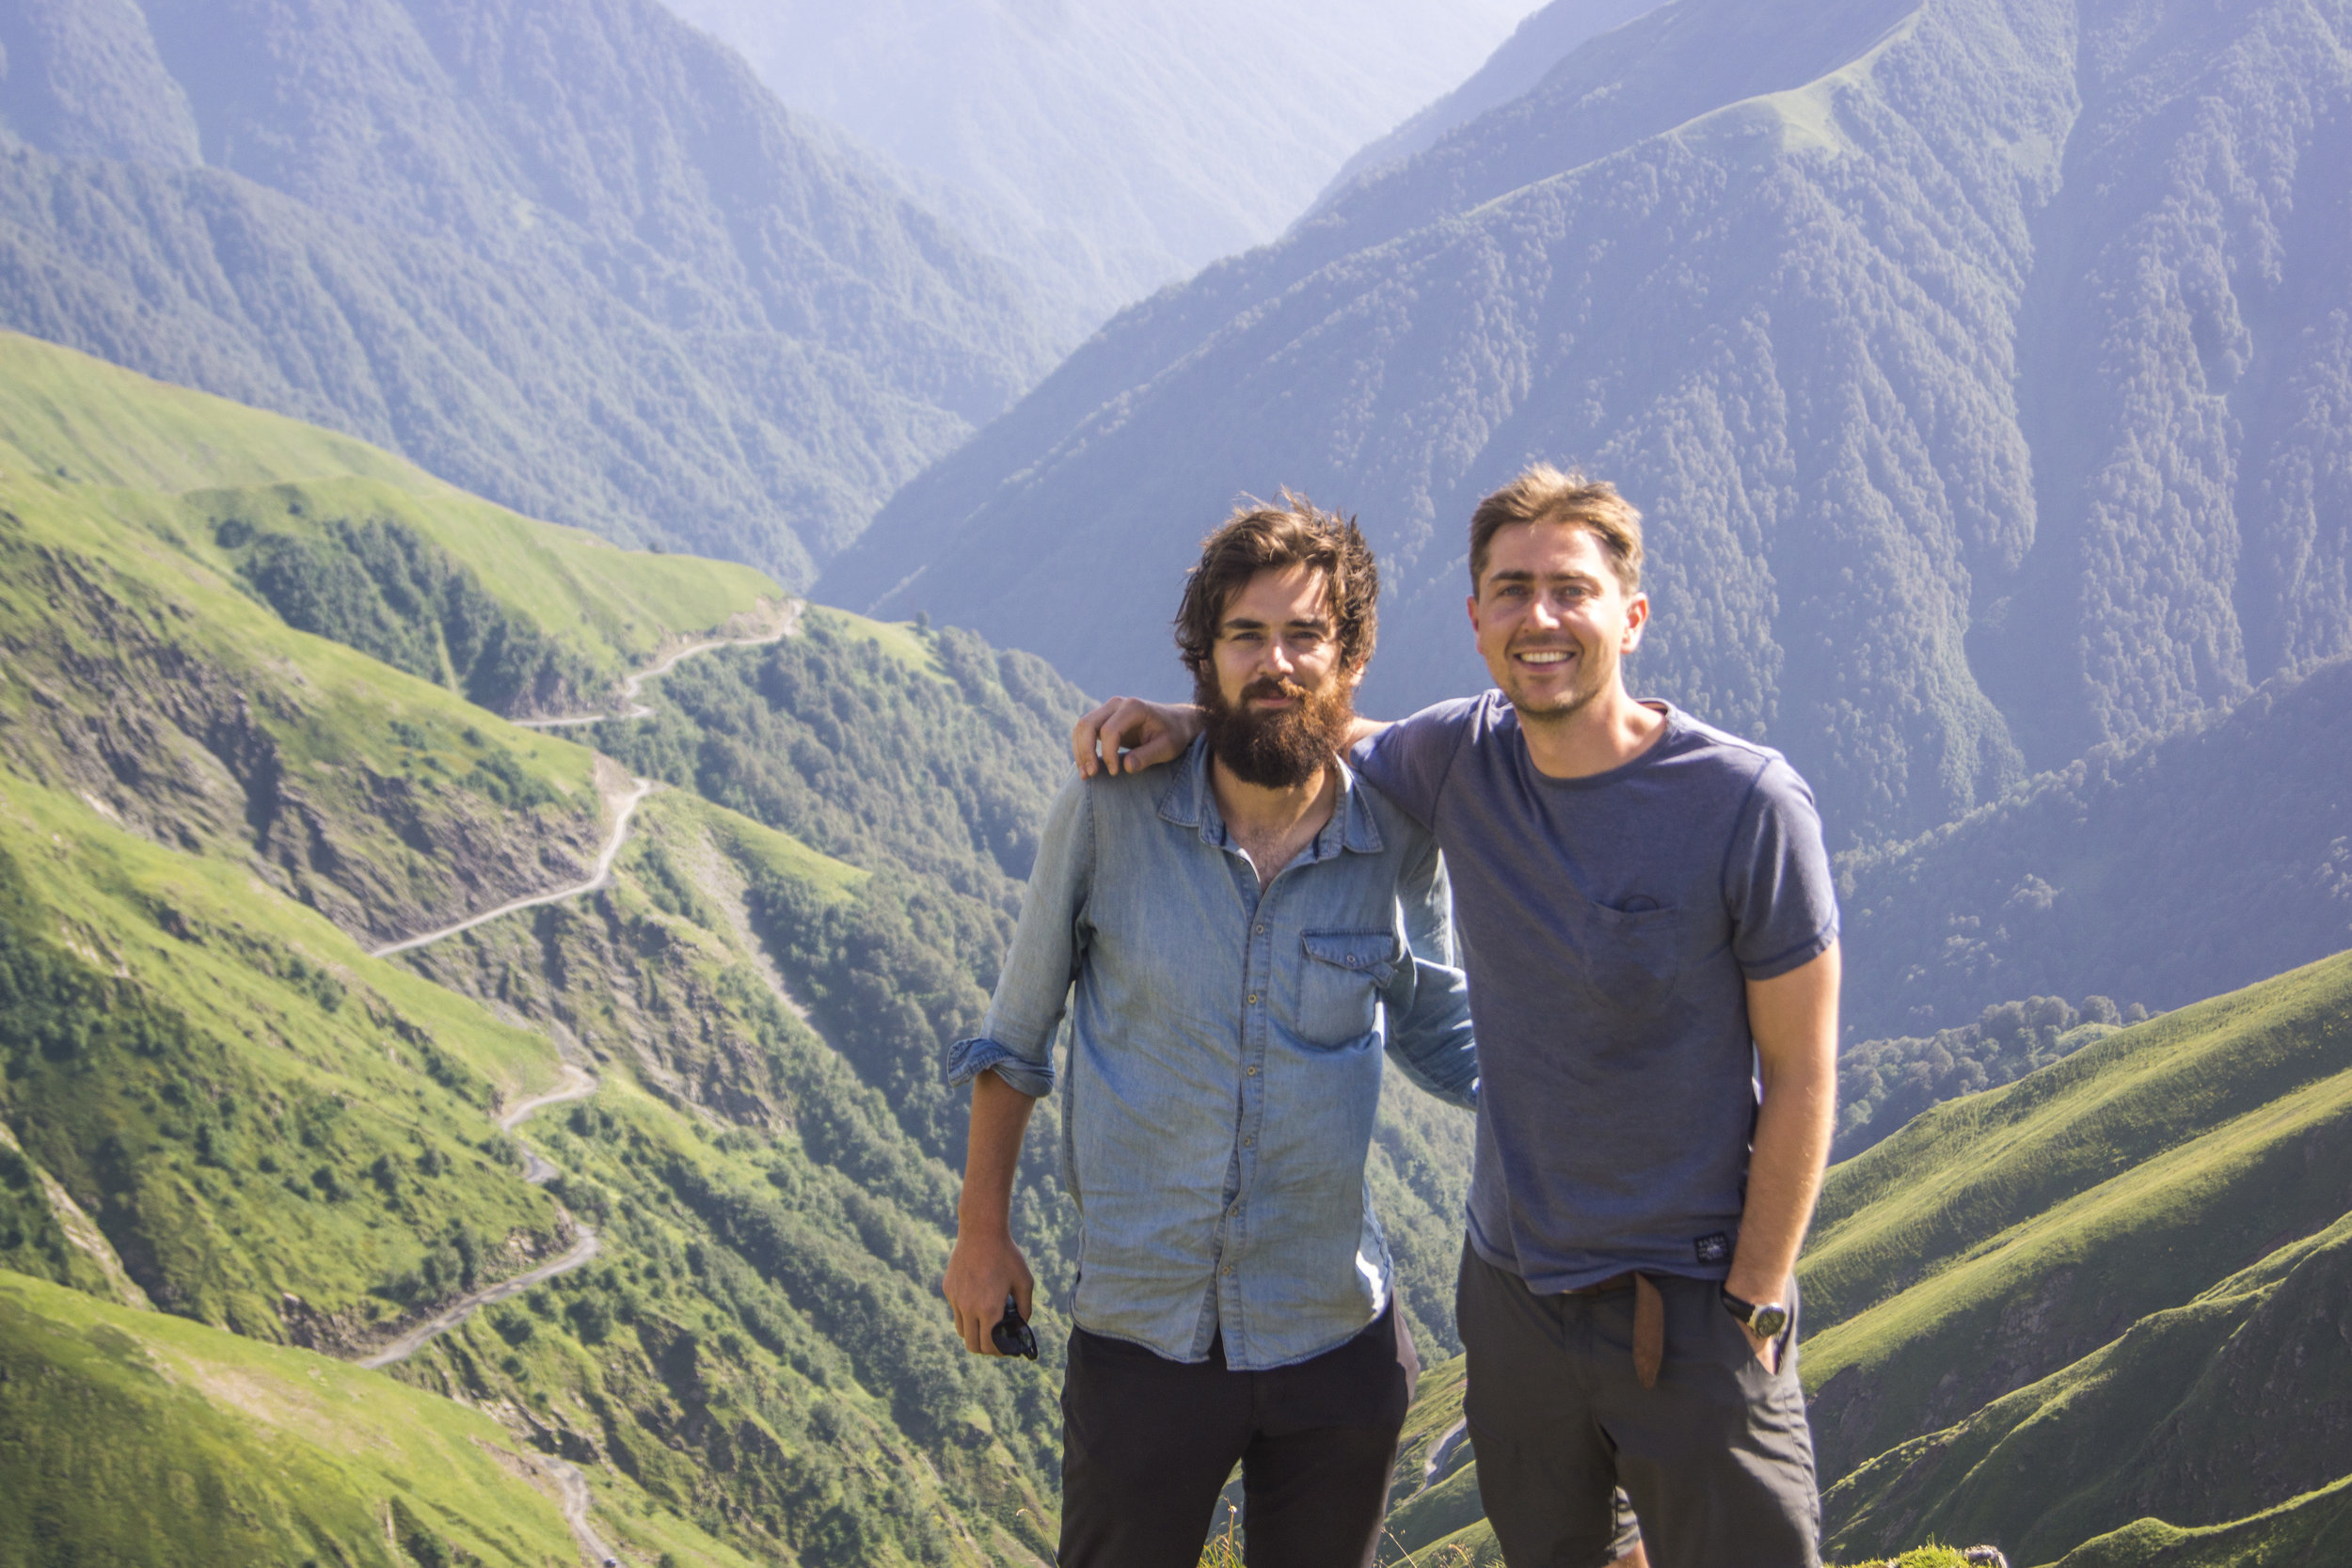 With Angus in Georgia:  My brother came to visit along the way, joining me for a 76 kilometer trek in the Georgian Highlands. It was on this hike I was saved by the Germans.